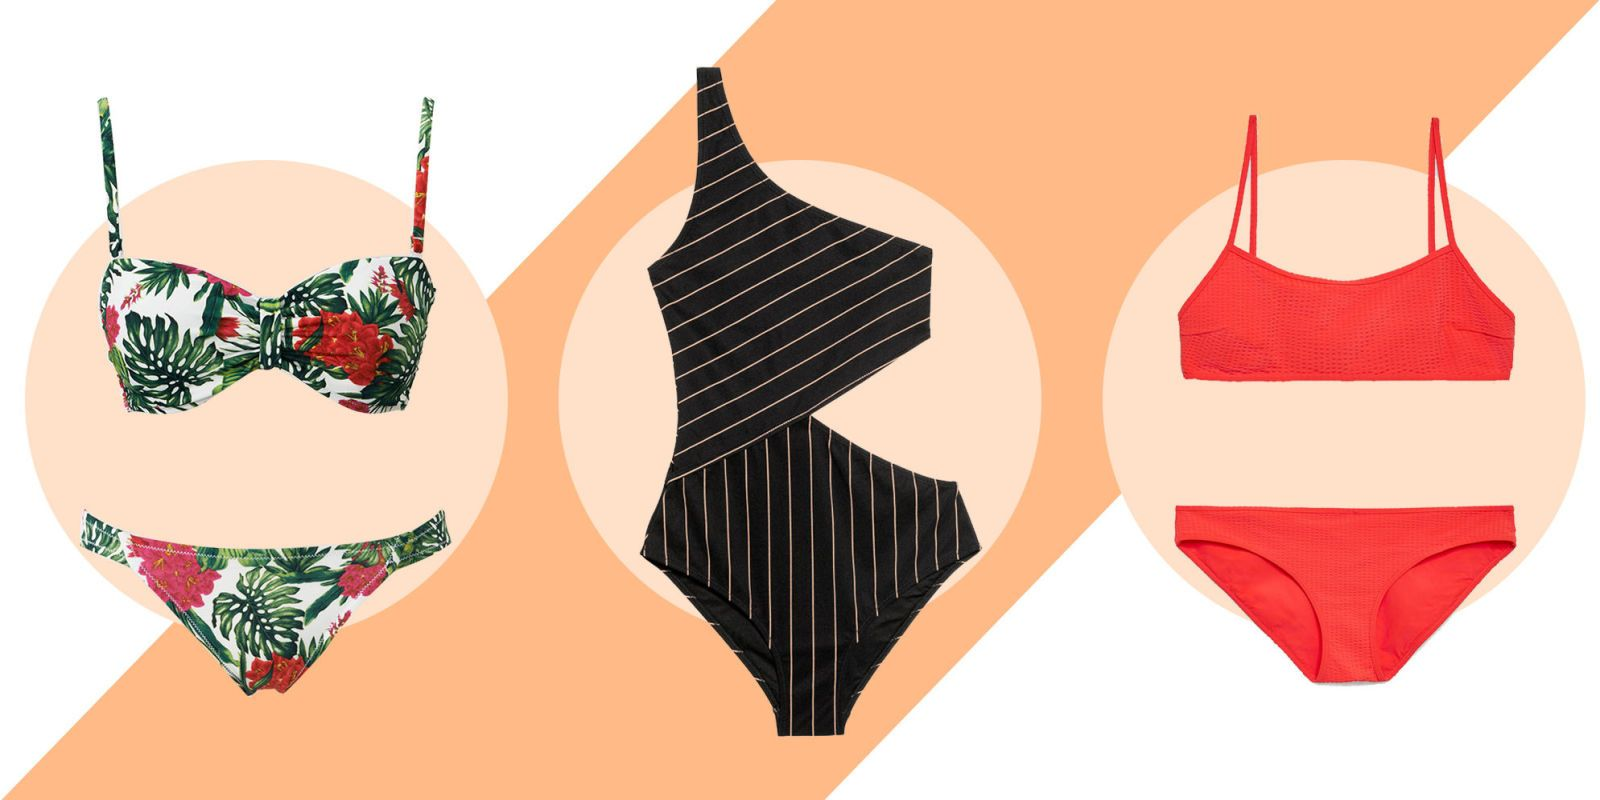 12 Under-$100 Swimsuits to Buy for Summer's Last Hurrah